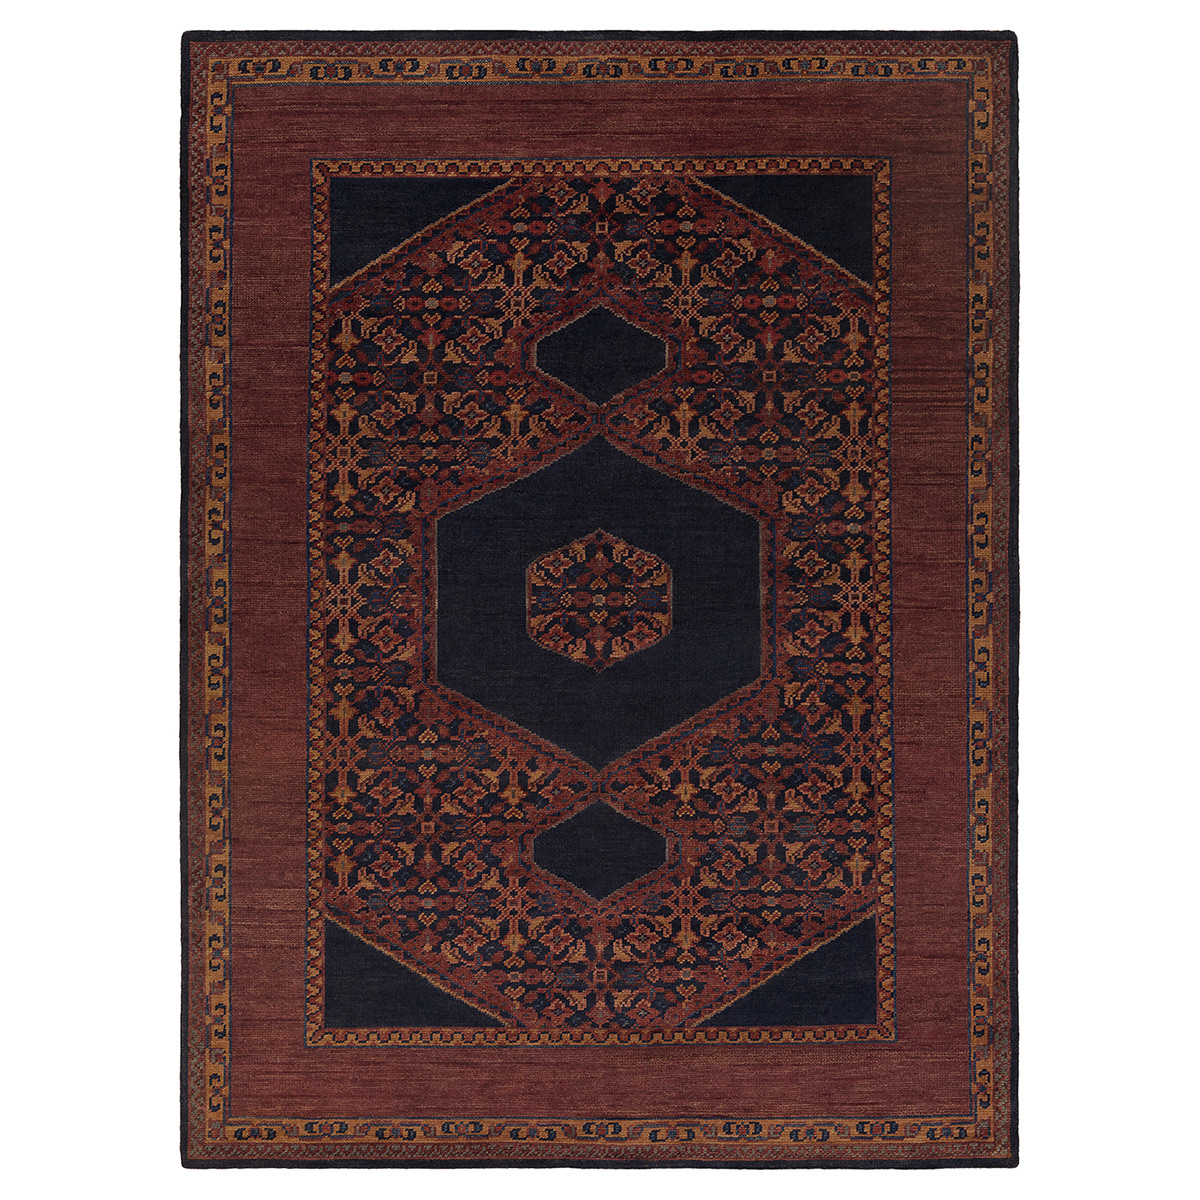 Priya Bazaar Antique Wash Burgundy Wool Rug - 8x11